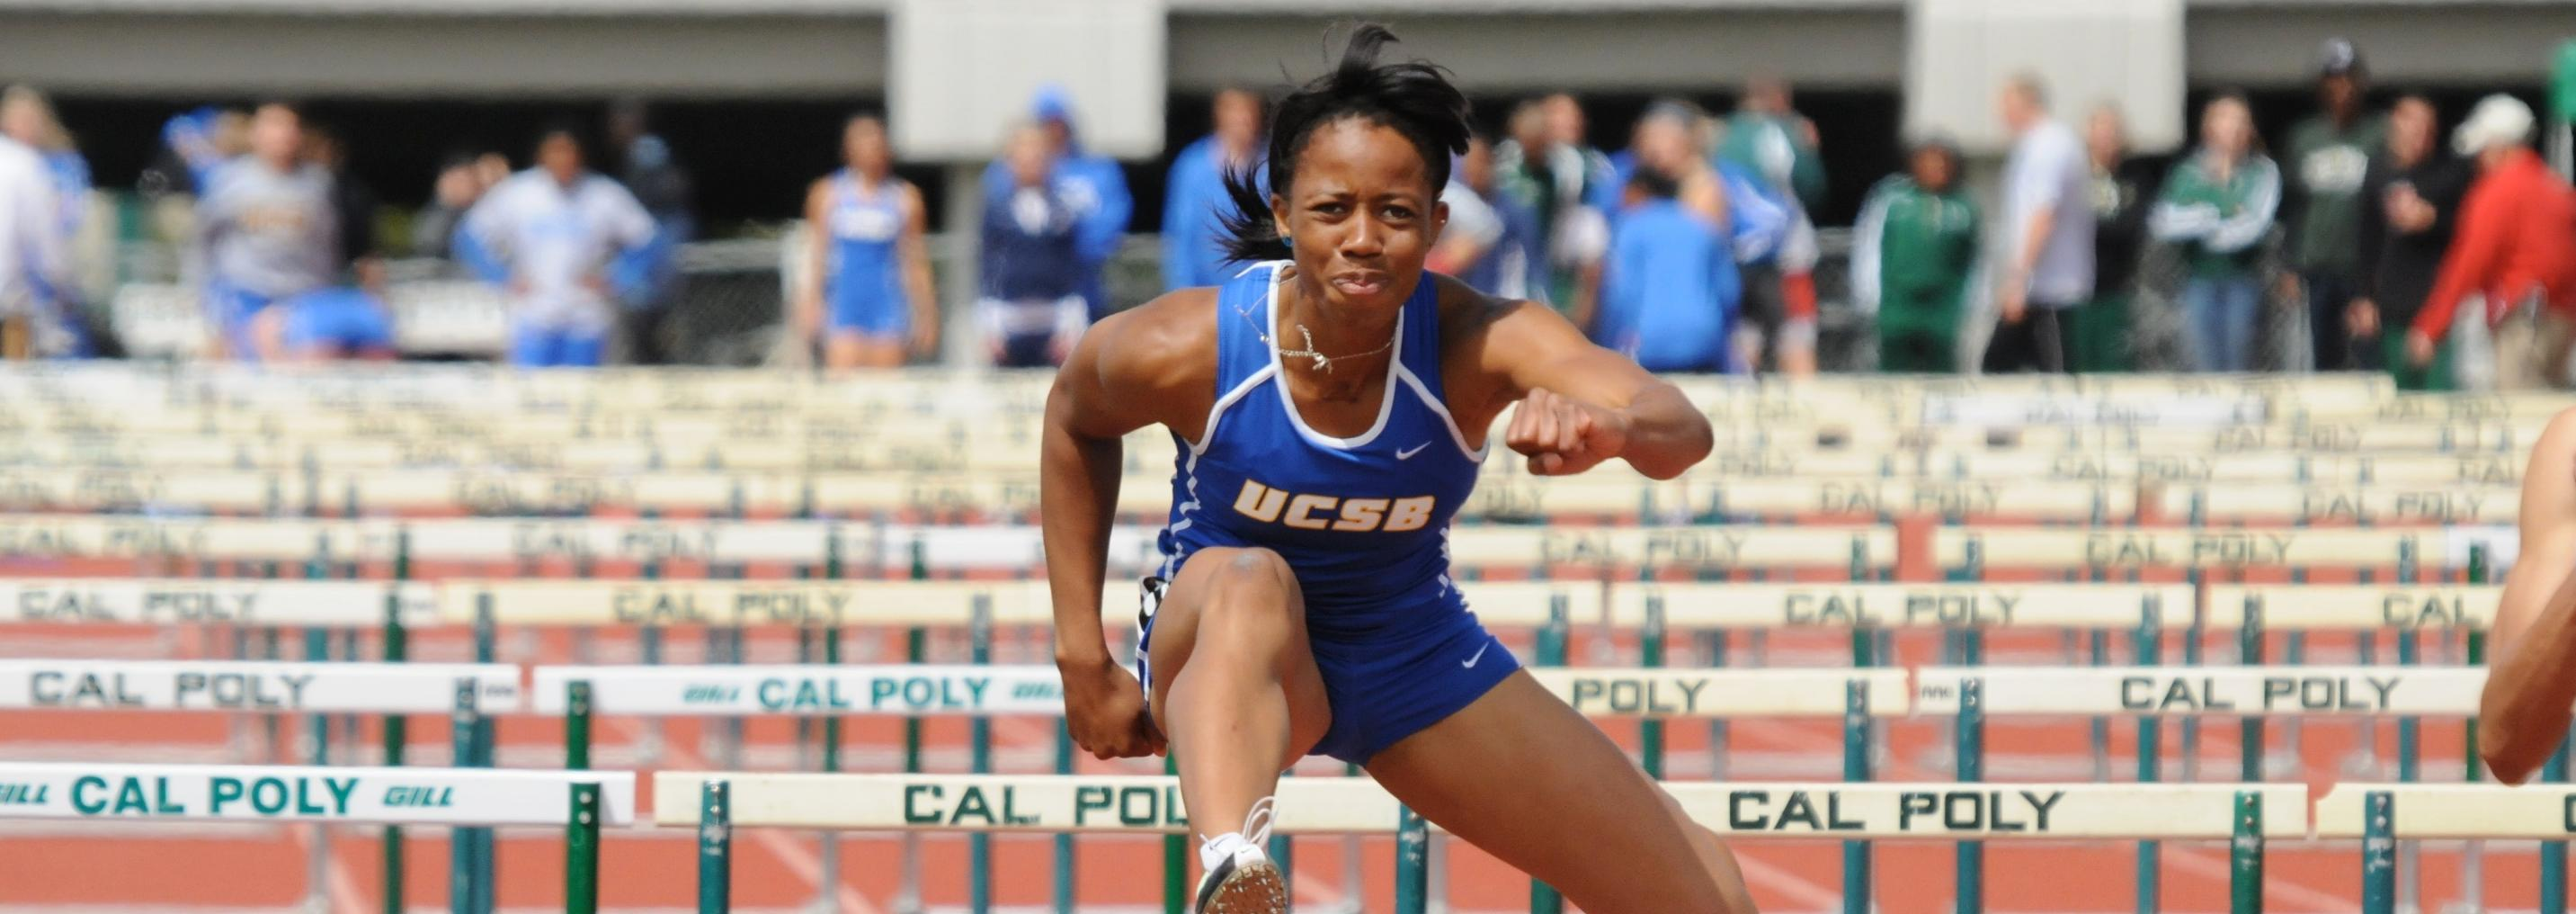 Barbara Nwaba will compete unattached in the Heptathlon at the USA Outdoor Championships